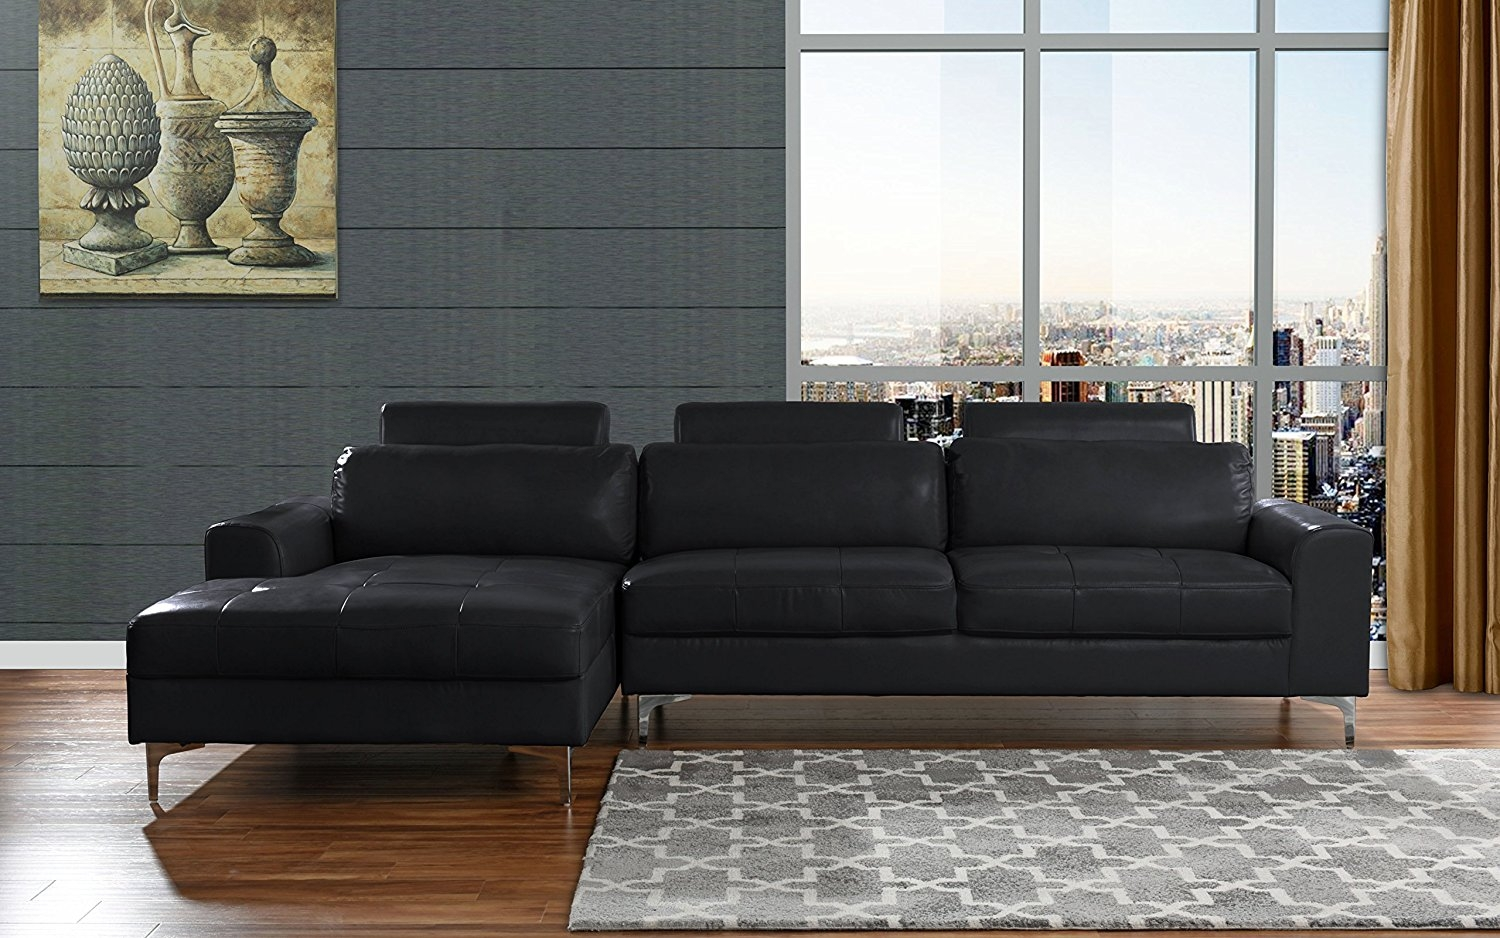 Delicieux Modern Large Leather Sectional Sofa, L Shape Couch With Extra Wide Chaise  Lounge (Black)   Walmart.com